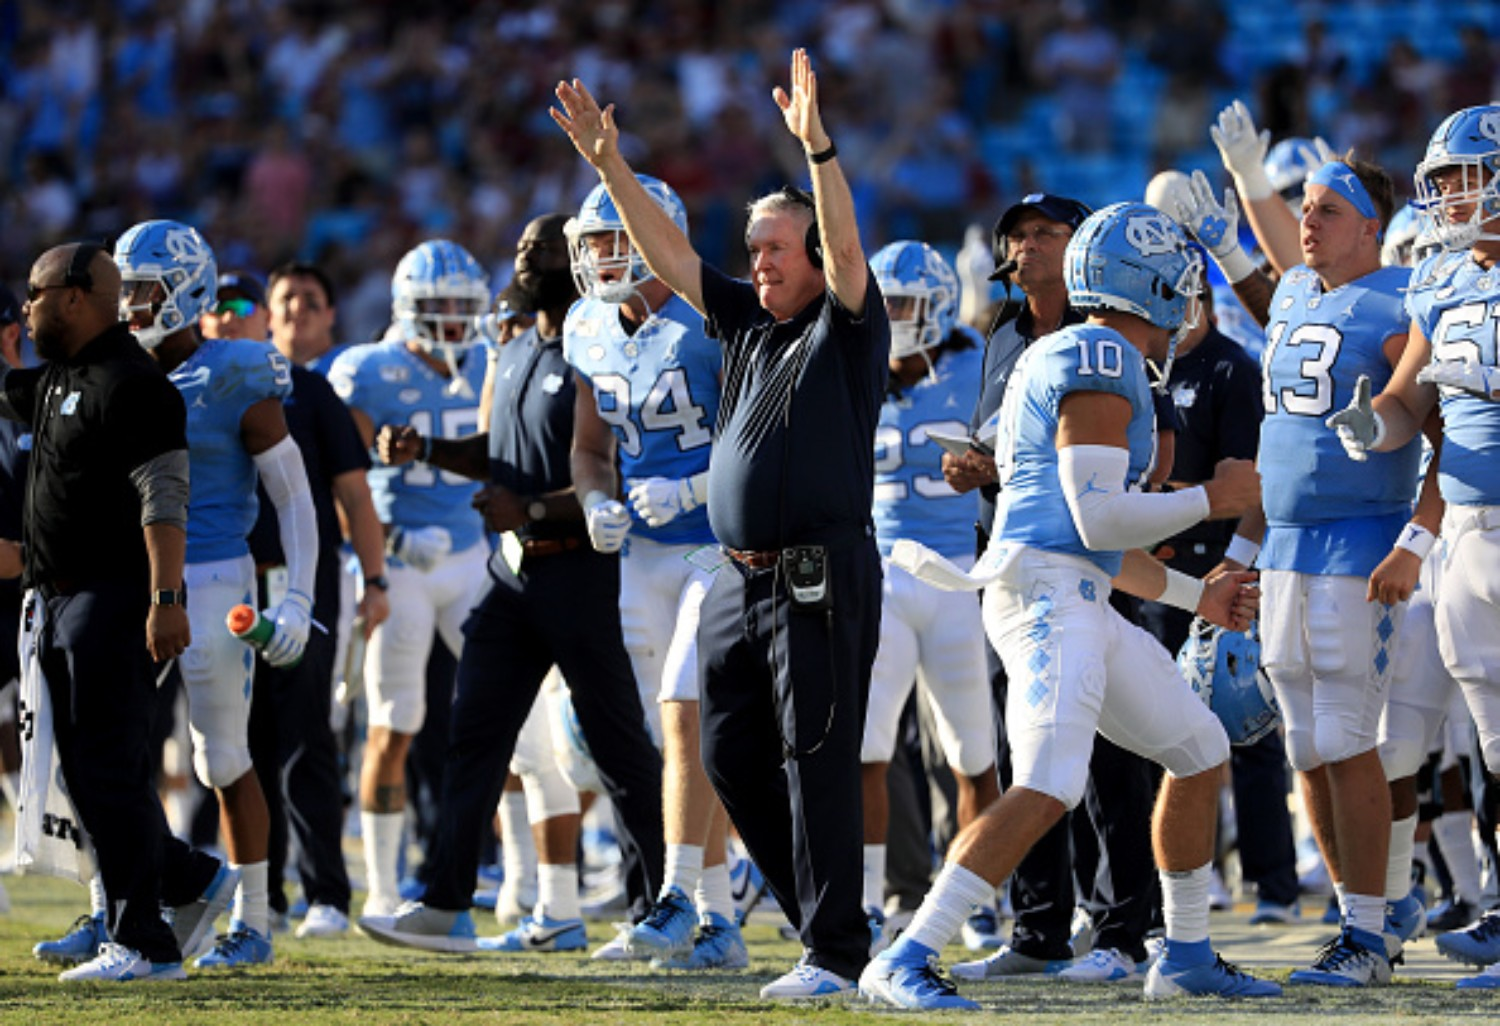 North Carolina's football team is ranked No. 5 in the country